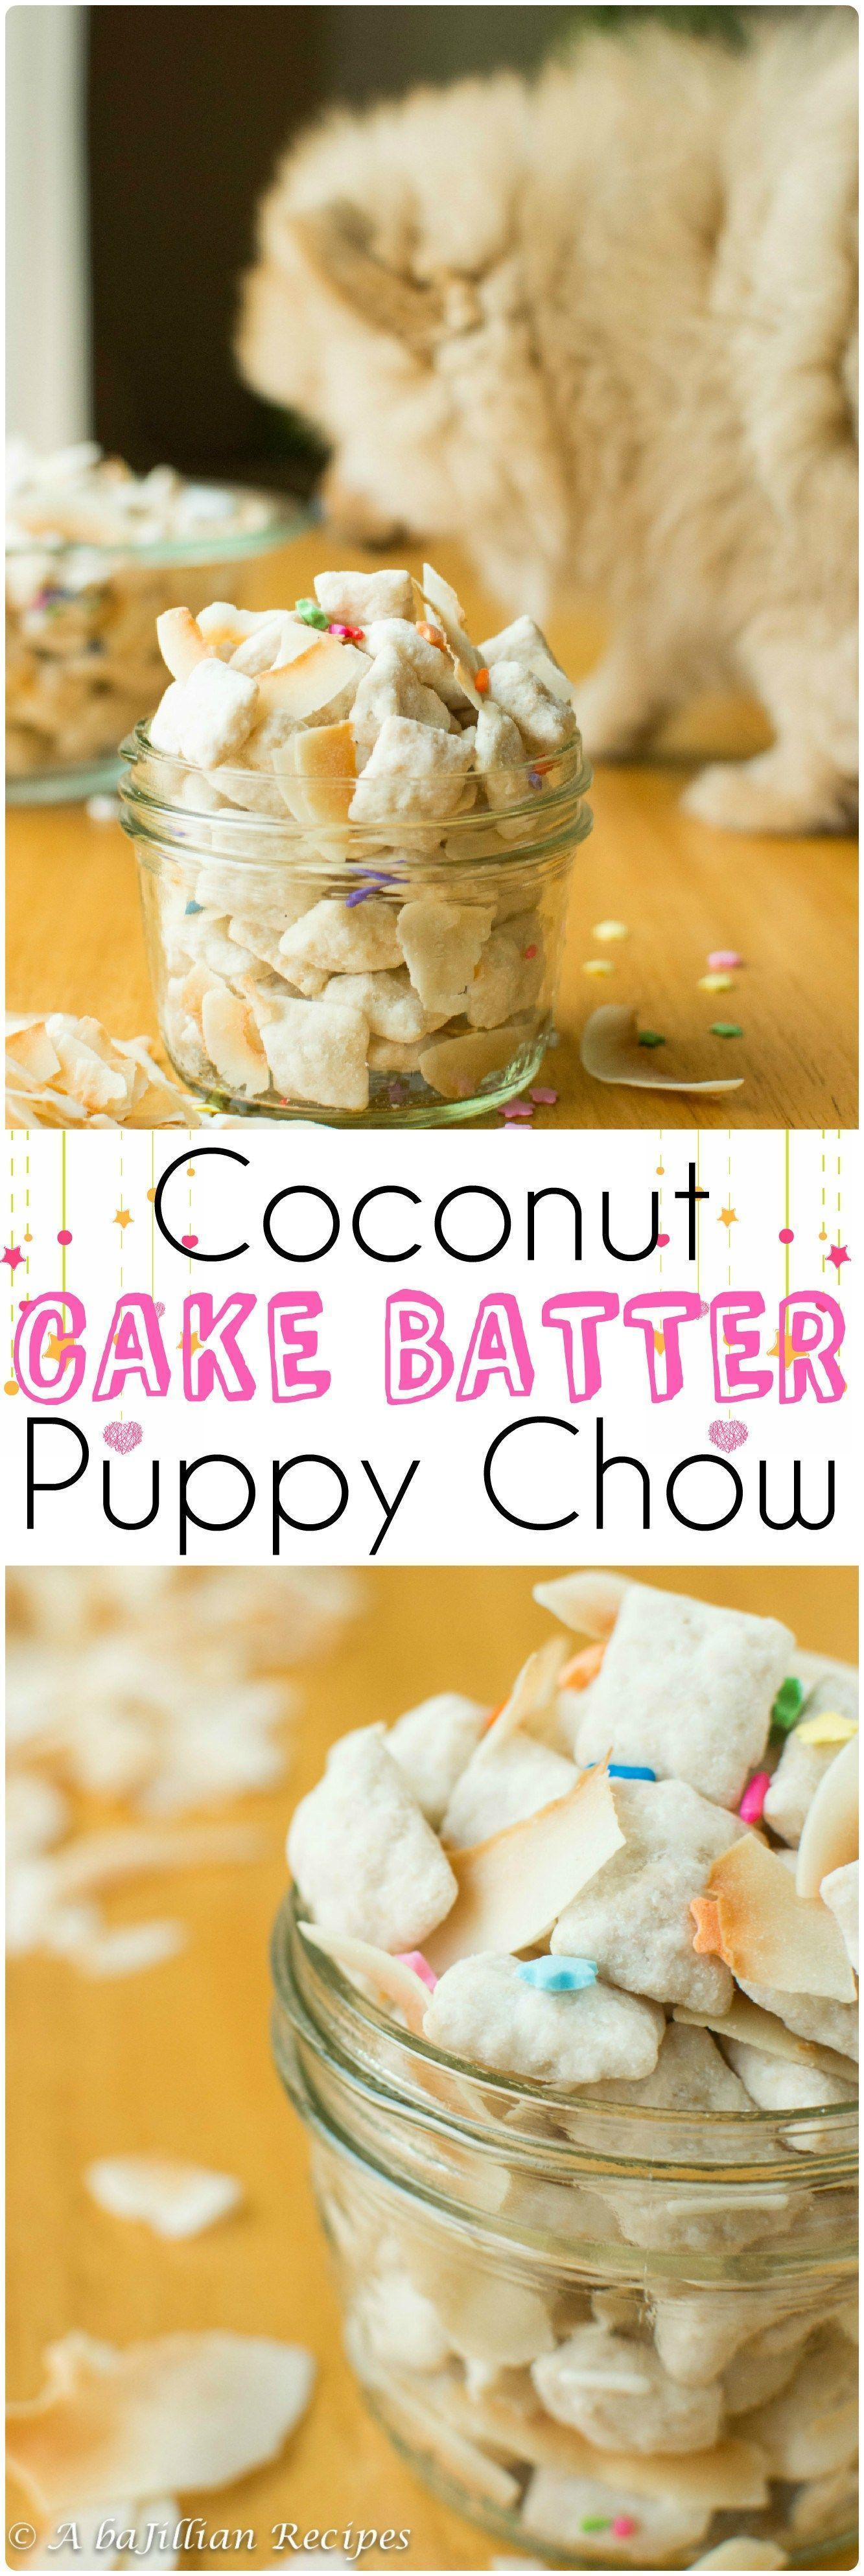 Coconut Cake Batter Puppy Chow #cakebatter Coconut Cake Batter Puppy Chow | A baJillian Recipes #puppychow Coconut Cake Batter Puppy Chow #cakebatter Coconut Cake Batter Puppy Chow | A baJillian Recipes #puppychow Coconut Cake Batter Puppy Chow #cakebatter Coconut Cake Batter Puppy Chow | A baJillian Recipes #puppychow Coconut Cake Batter Puppy Chow #cakebatter Coconut Cake Batter Puppy Chow | A baJillian Recipes #puppychow Coconut Cake Batter Puppy Chow #cakebatter Coconut Cake Batter Puppy Cho #puppychow